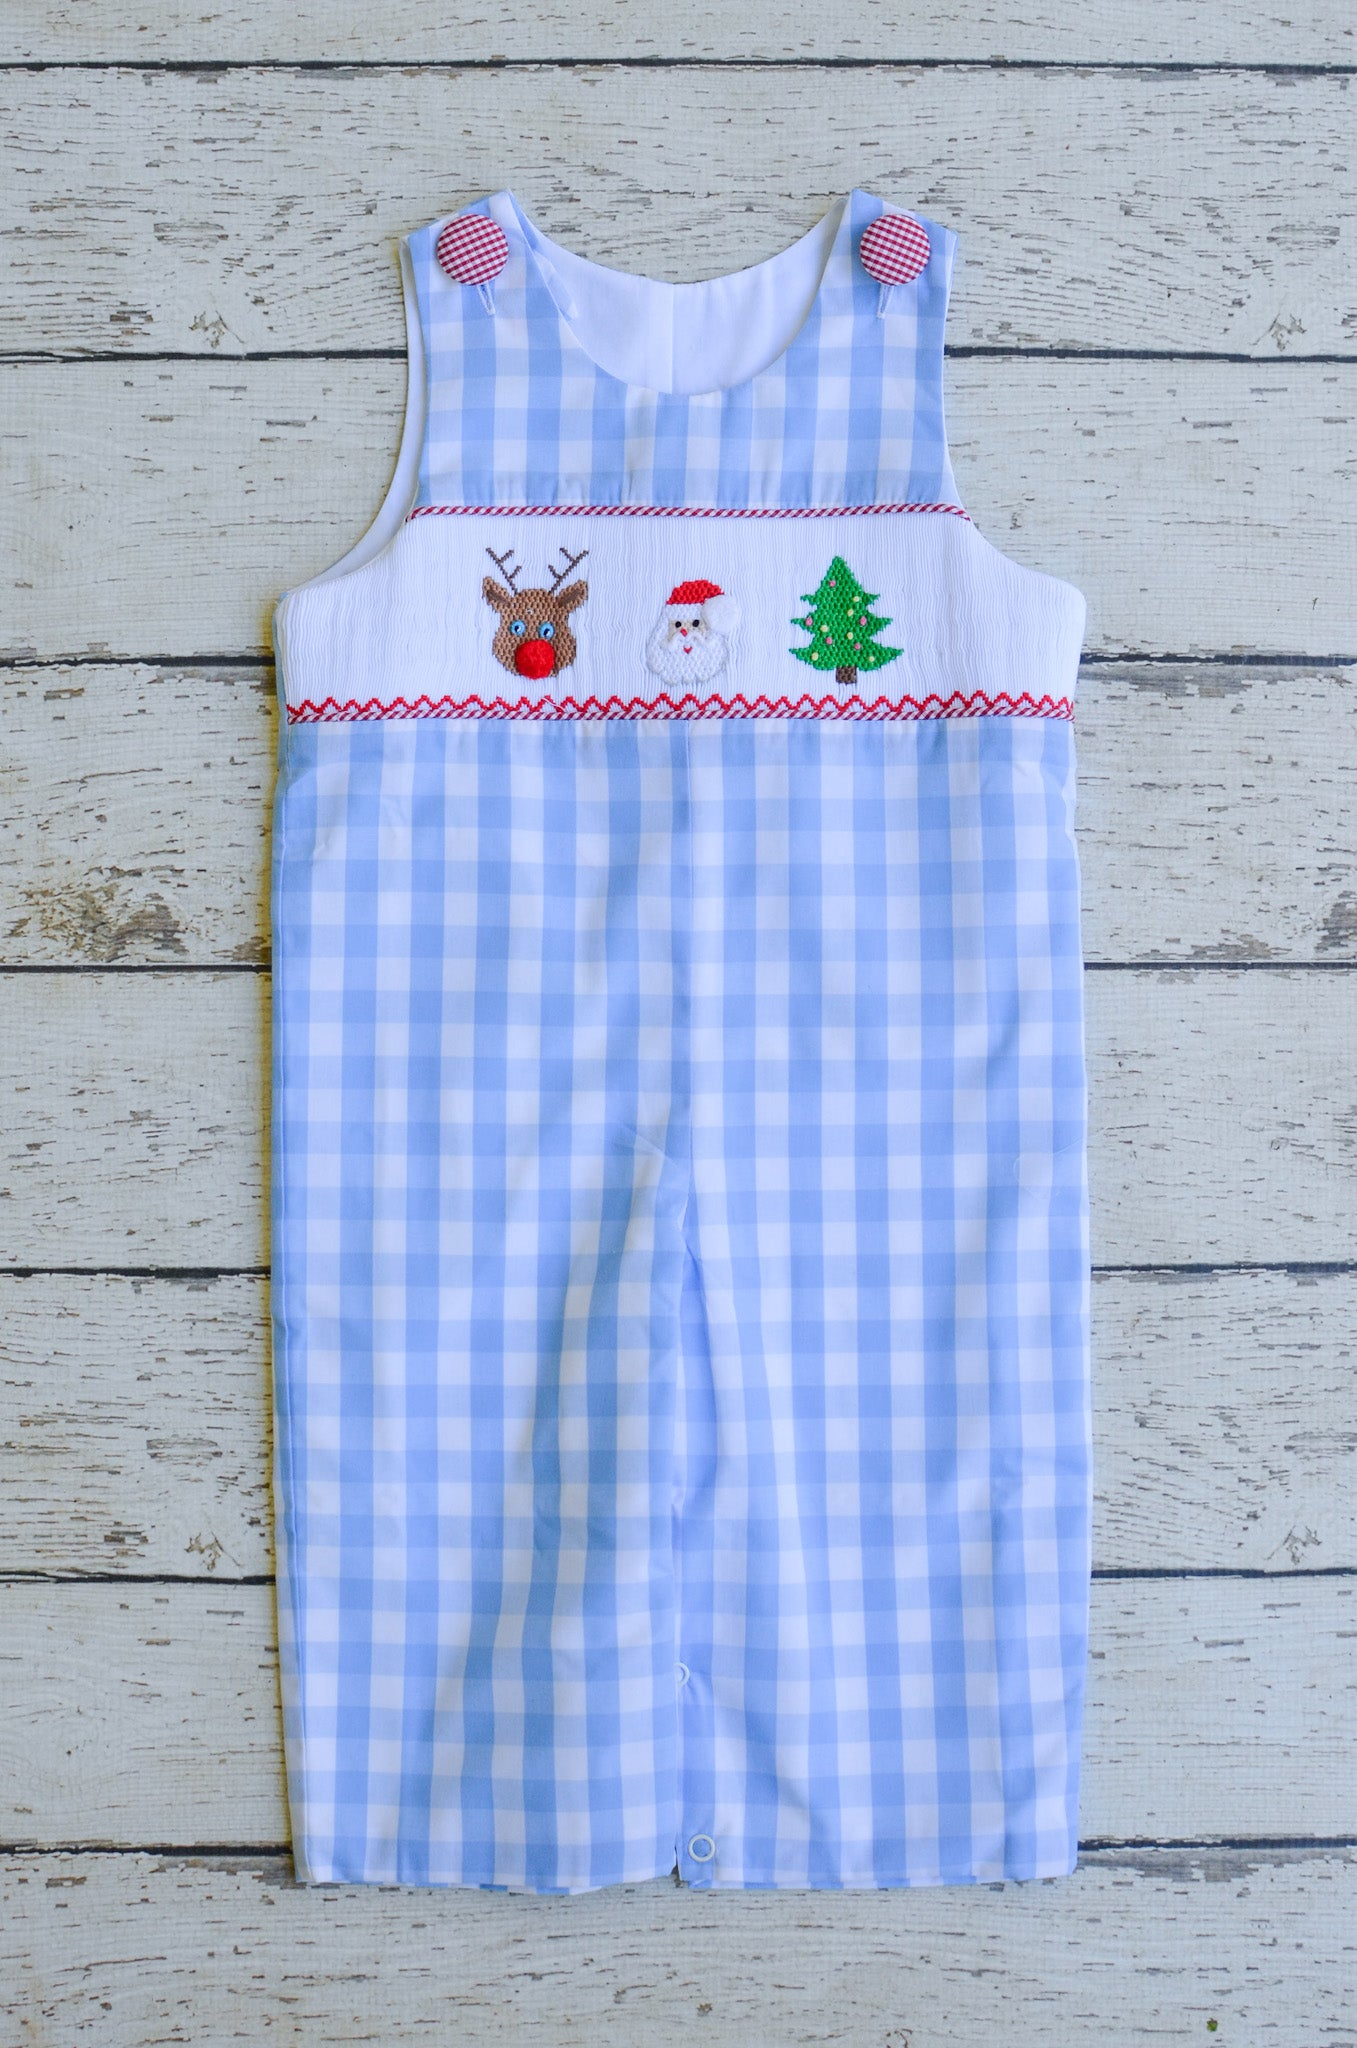 Reindeer Games Smocked Boys Longall